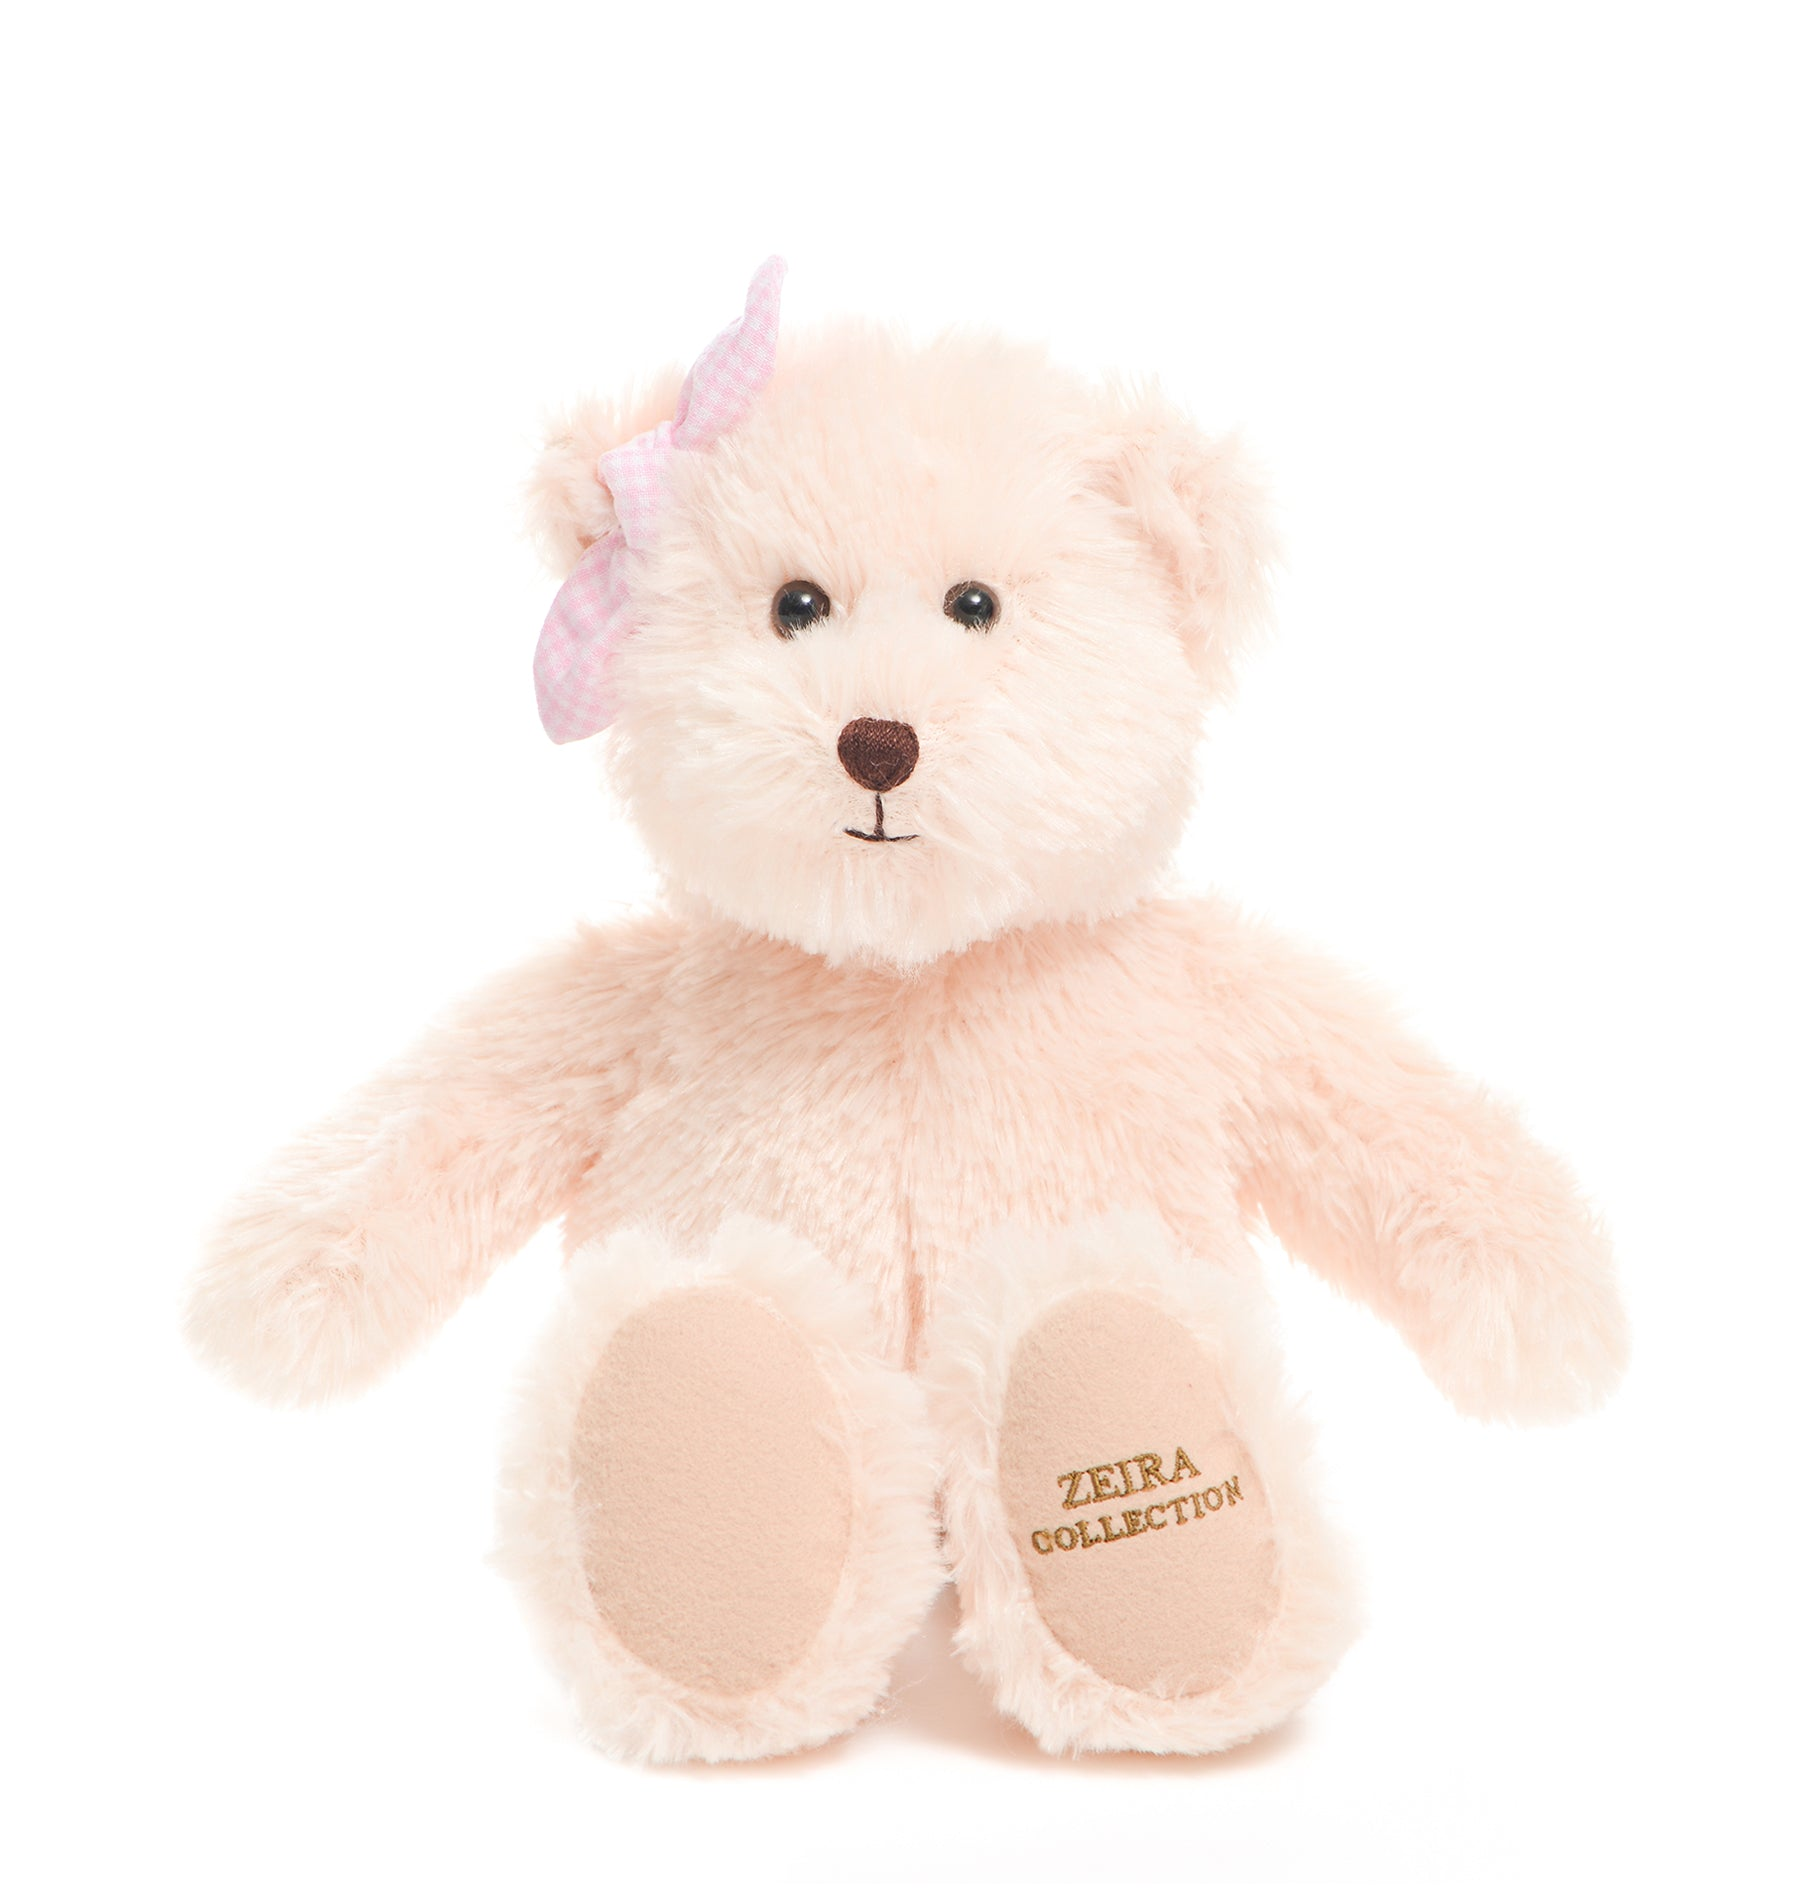 "TEDDY HOUSE BONEKA TEDDY BEAR ZEIRA BEAR 12""  SOFT"